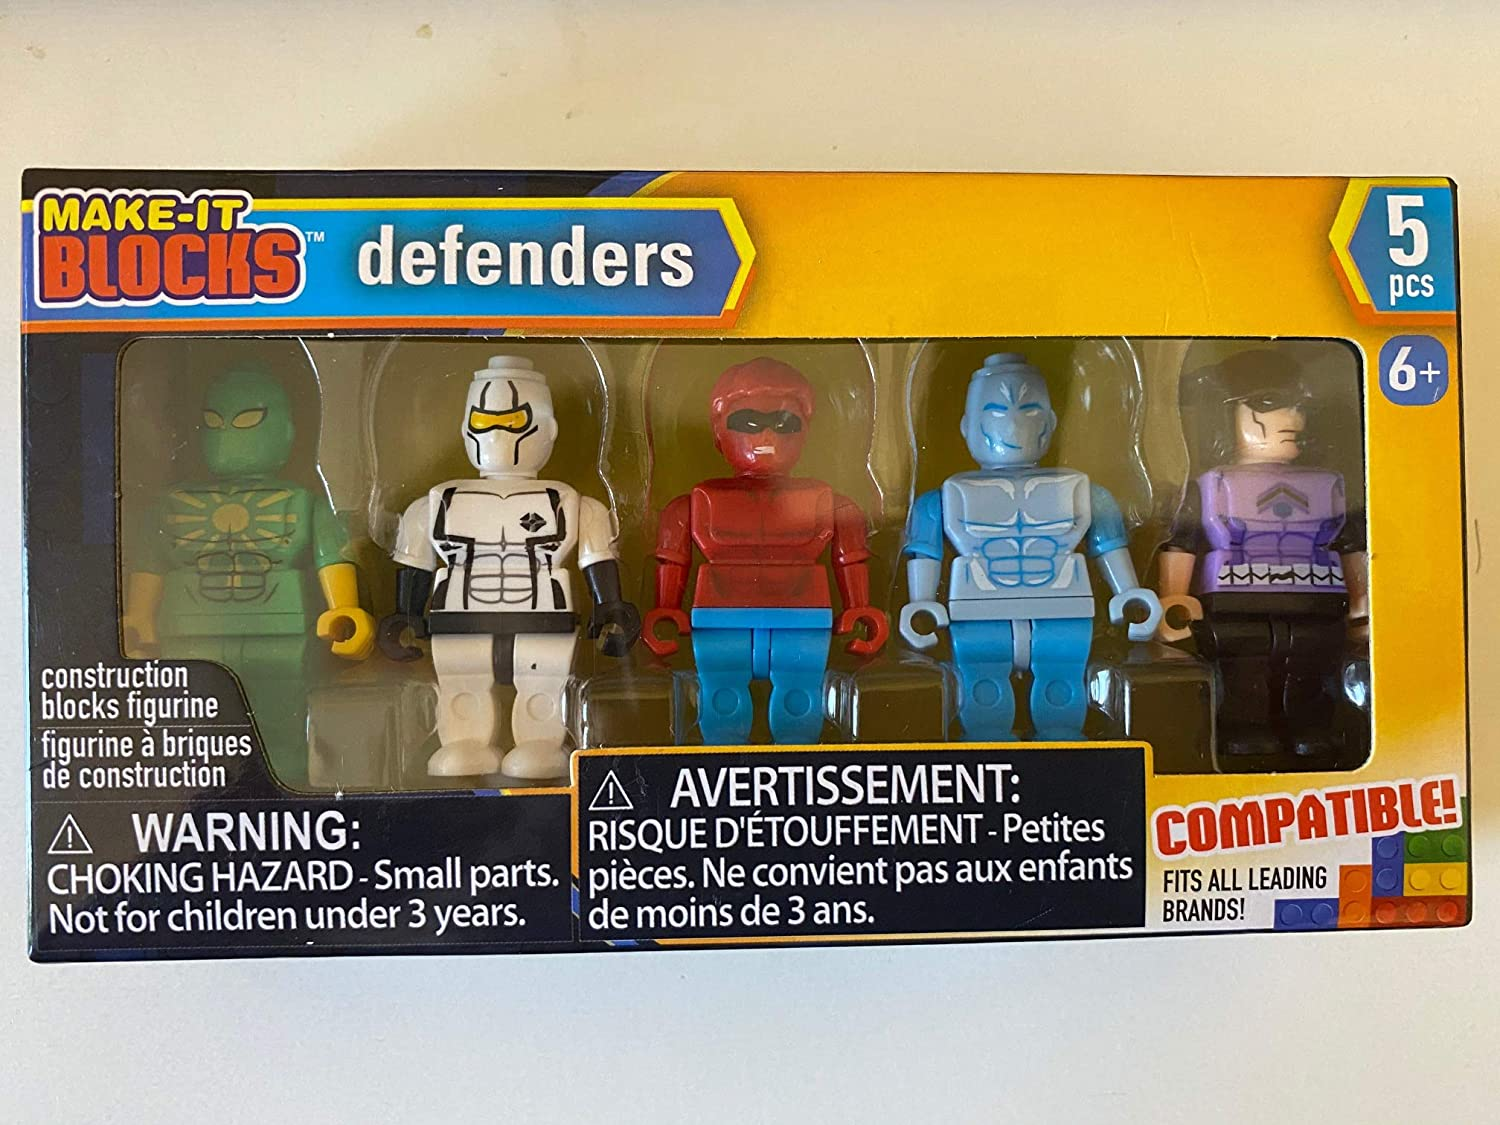 Minifigures by Make-it Blocks Compatible with Leading Brand Building Bricks Defenders 5-ct Pack